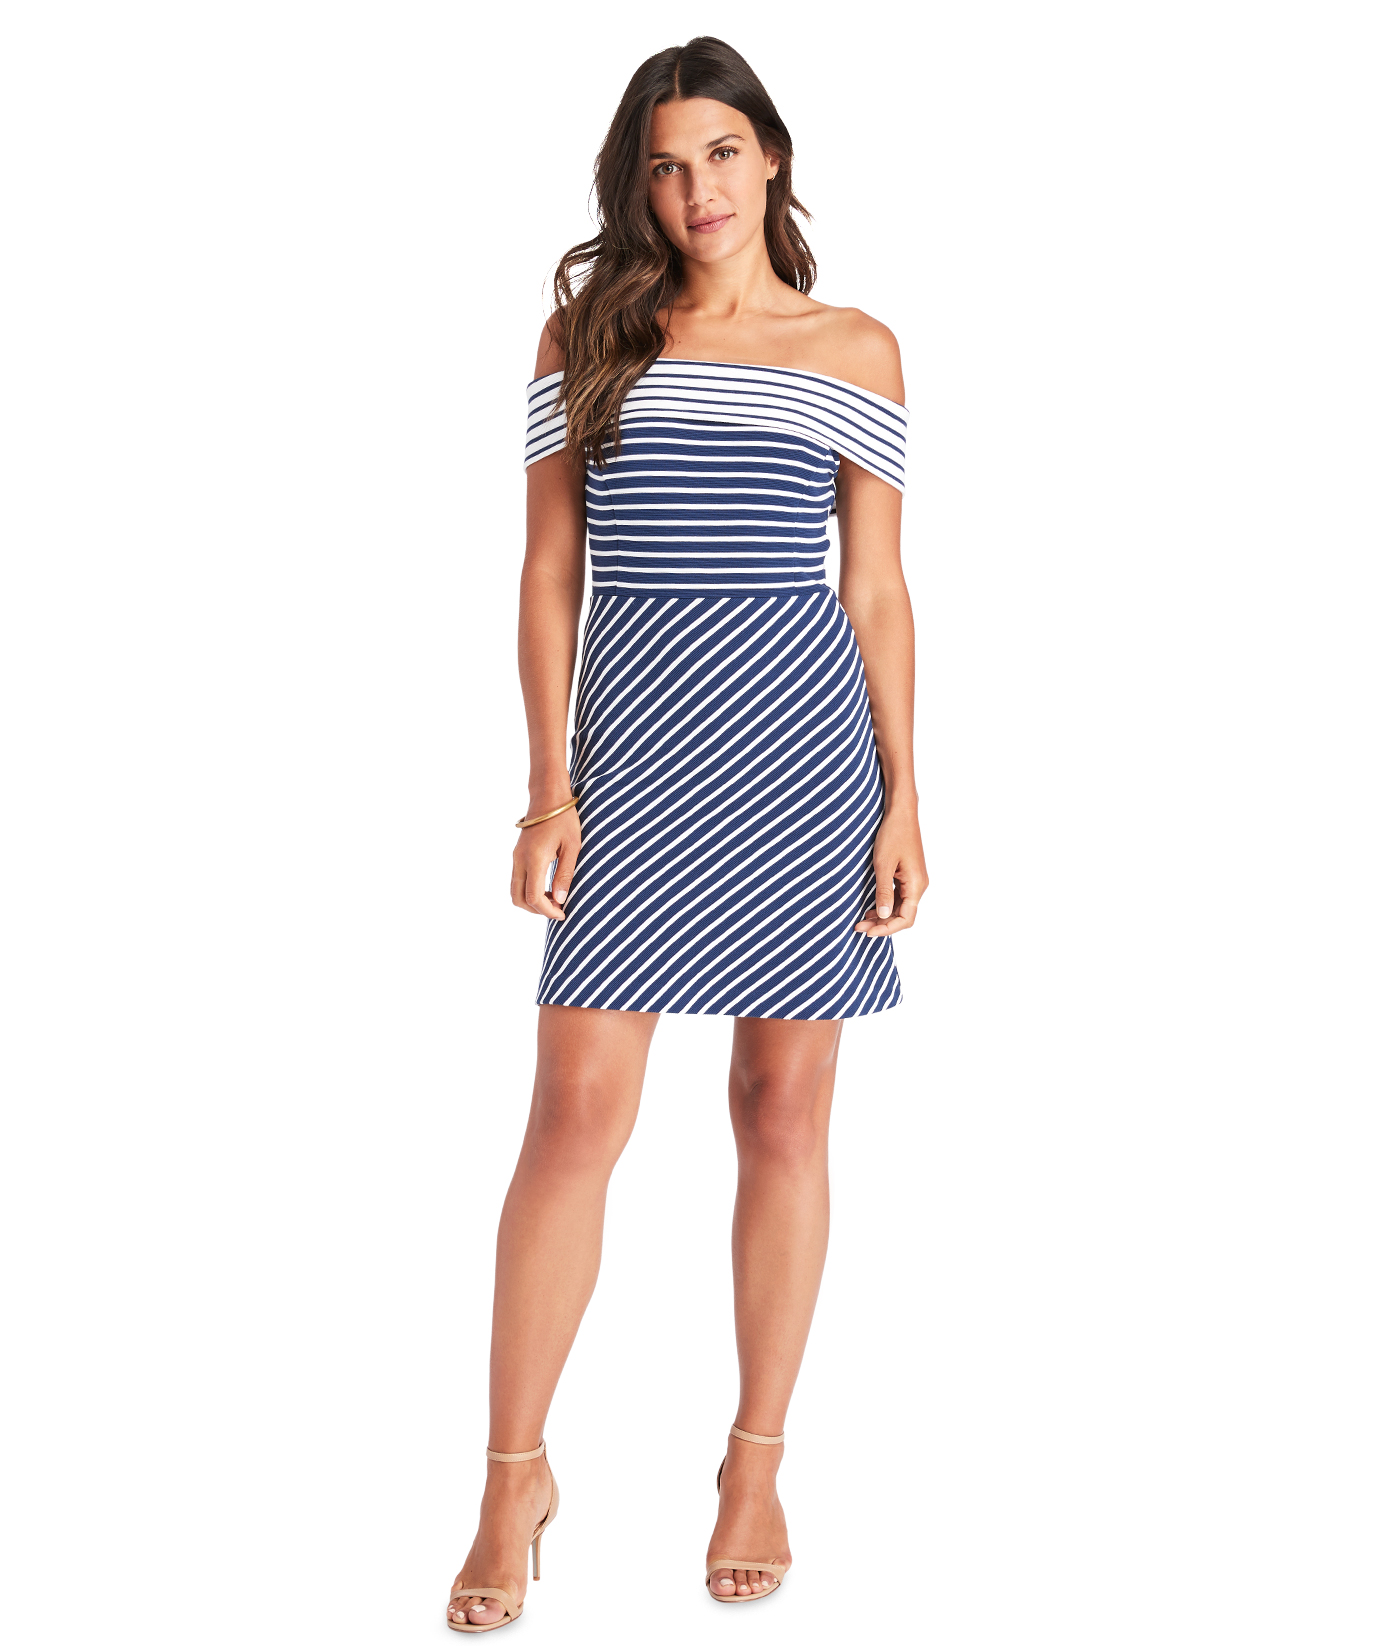 VINEYARD VINES Mixed Stripe Flutter Sleeve Dress MARLIN BLUE 3T or 4T NWT $65